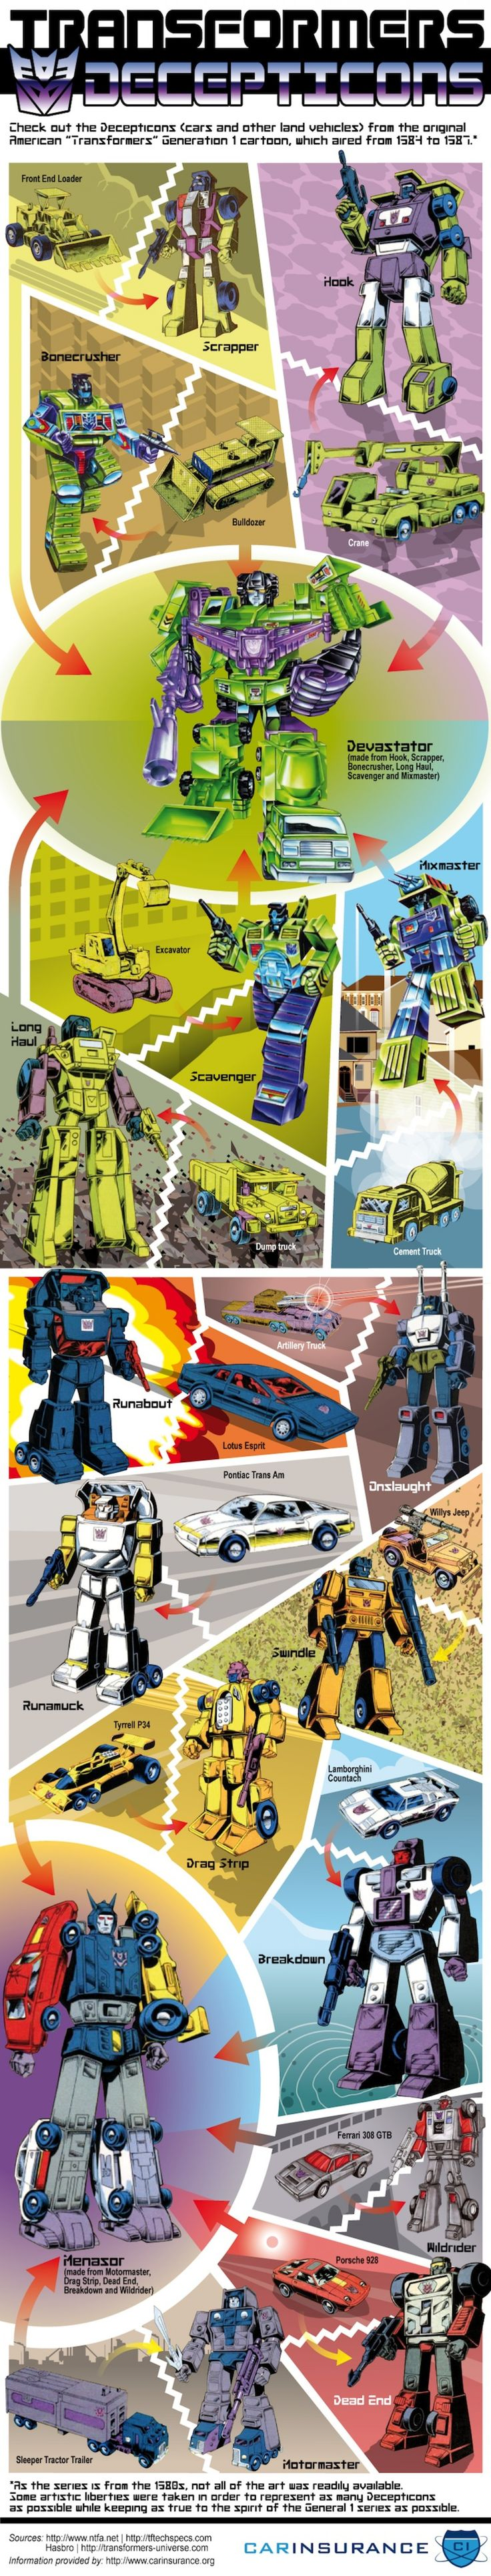 They evolved on another planet to look like cars and trucks the decepticons vehicles takes a look at what the bad guys from the transformers universe turn